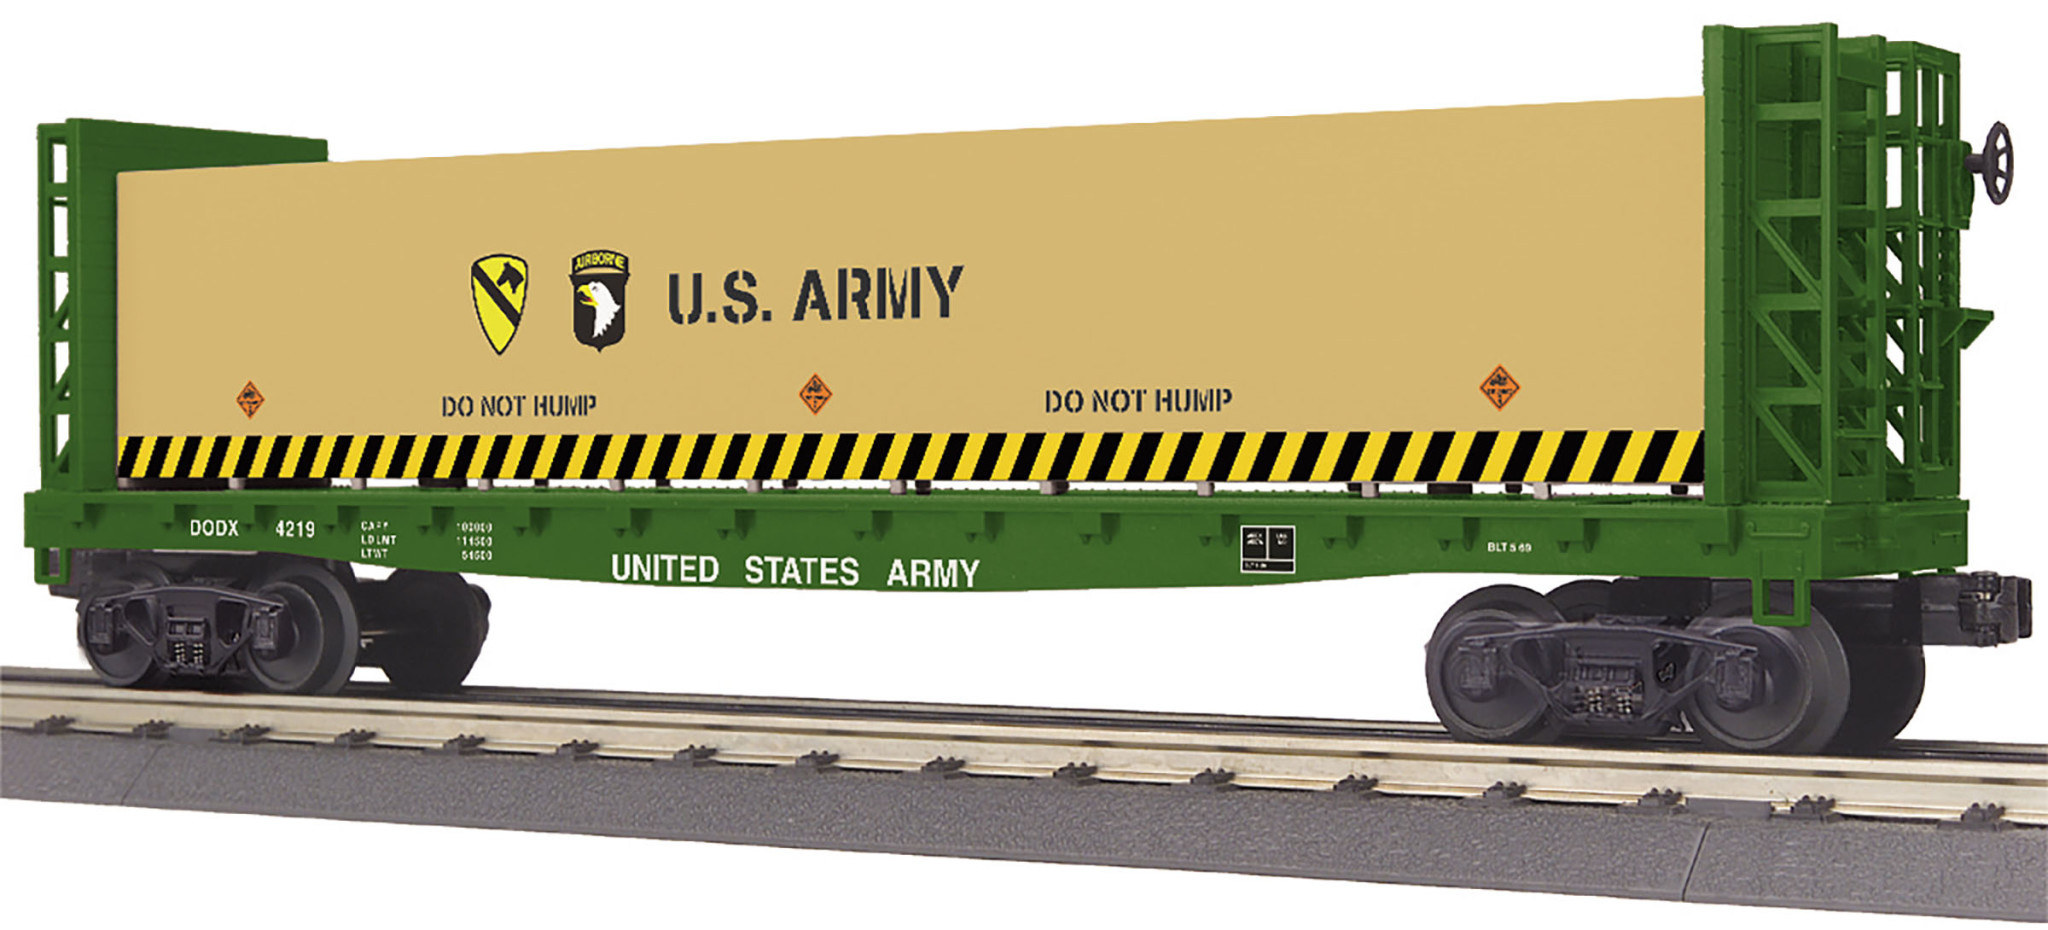 MTH - RailKing U.S. Army Bulkhead Flat Car w/ Lumber Load